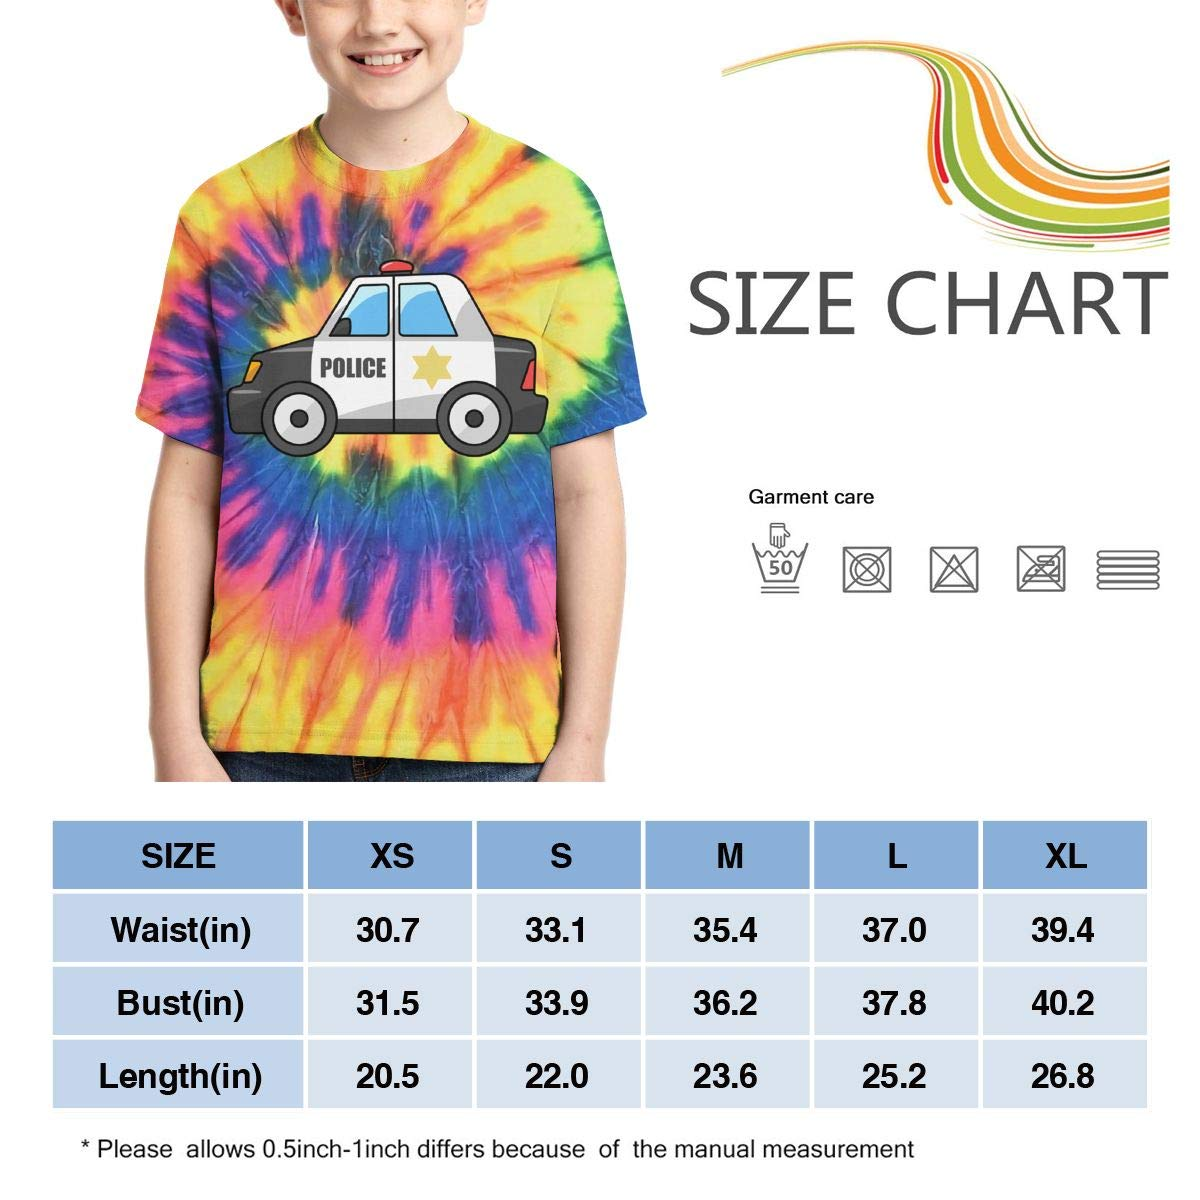 AMODECO Police Car 3D Printed Tee T-Shirt for Youth Teenager Boys Girls